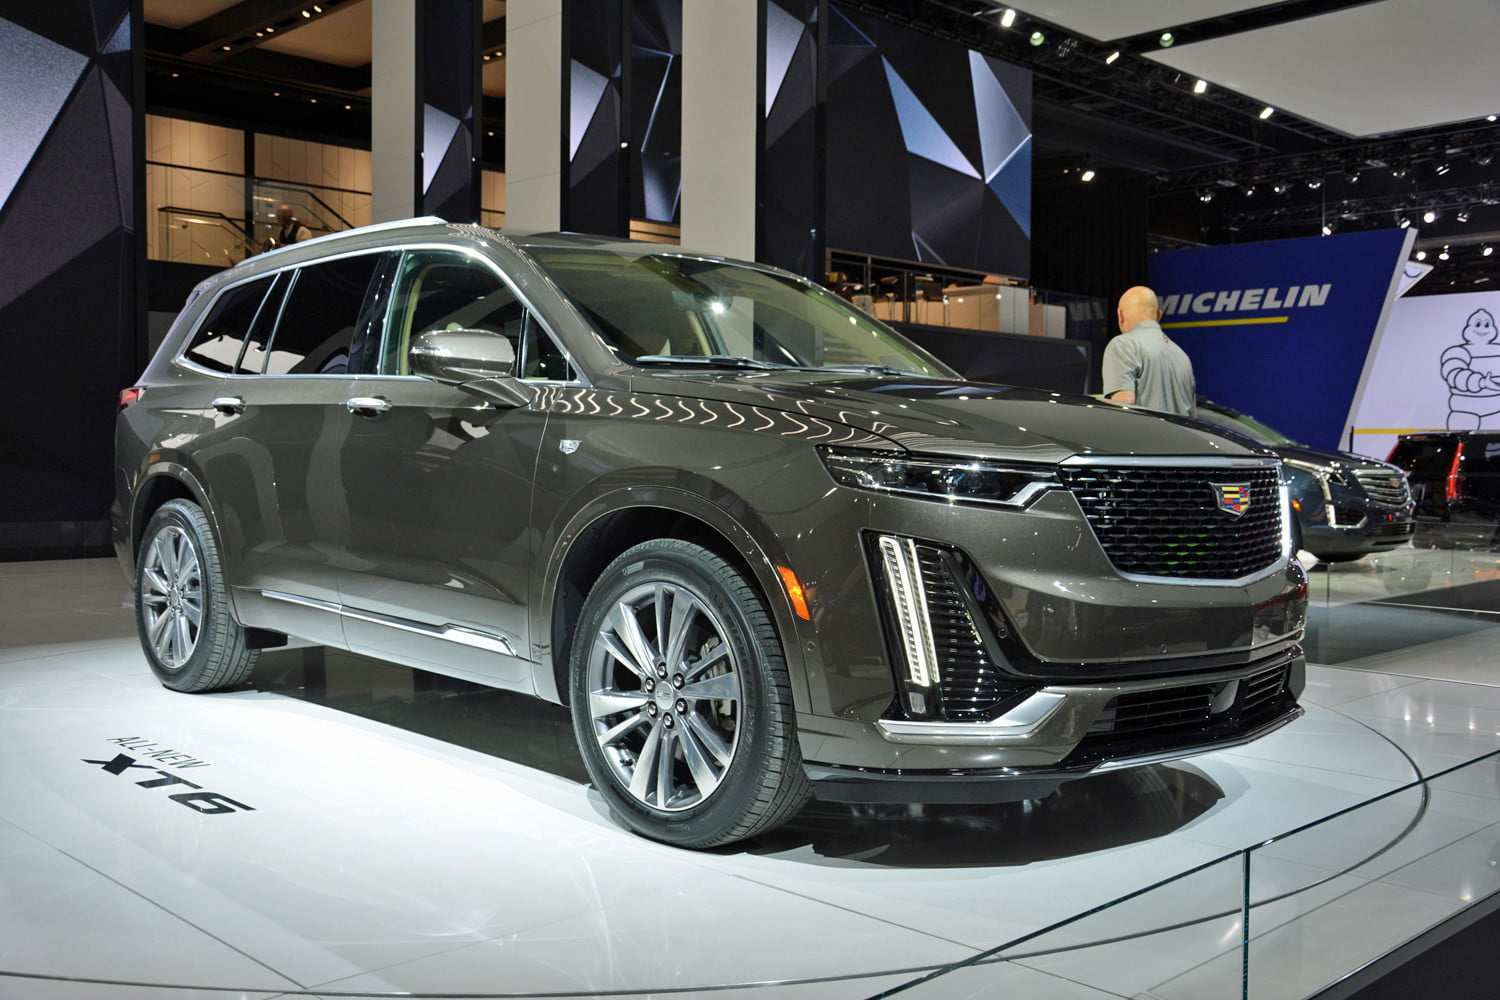 63 New 2020 Cadillac Xt6 Gas Mileage New Review by 2020 Cadillac Xt6 Gas Mileage